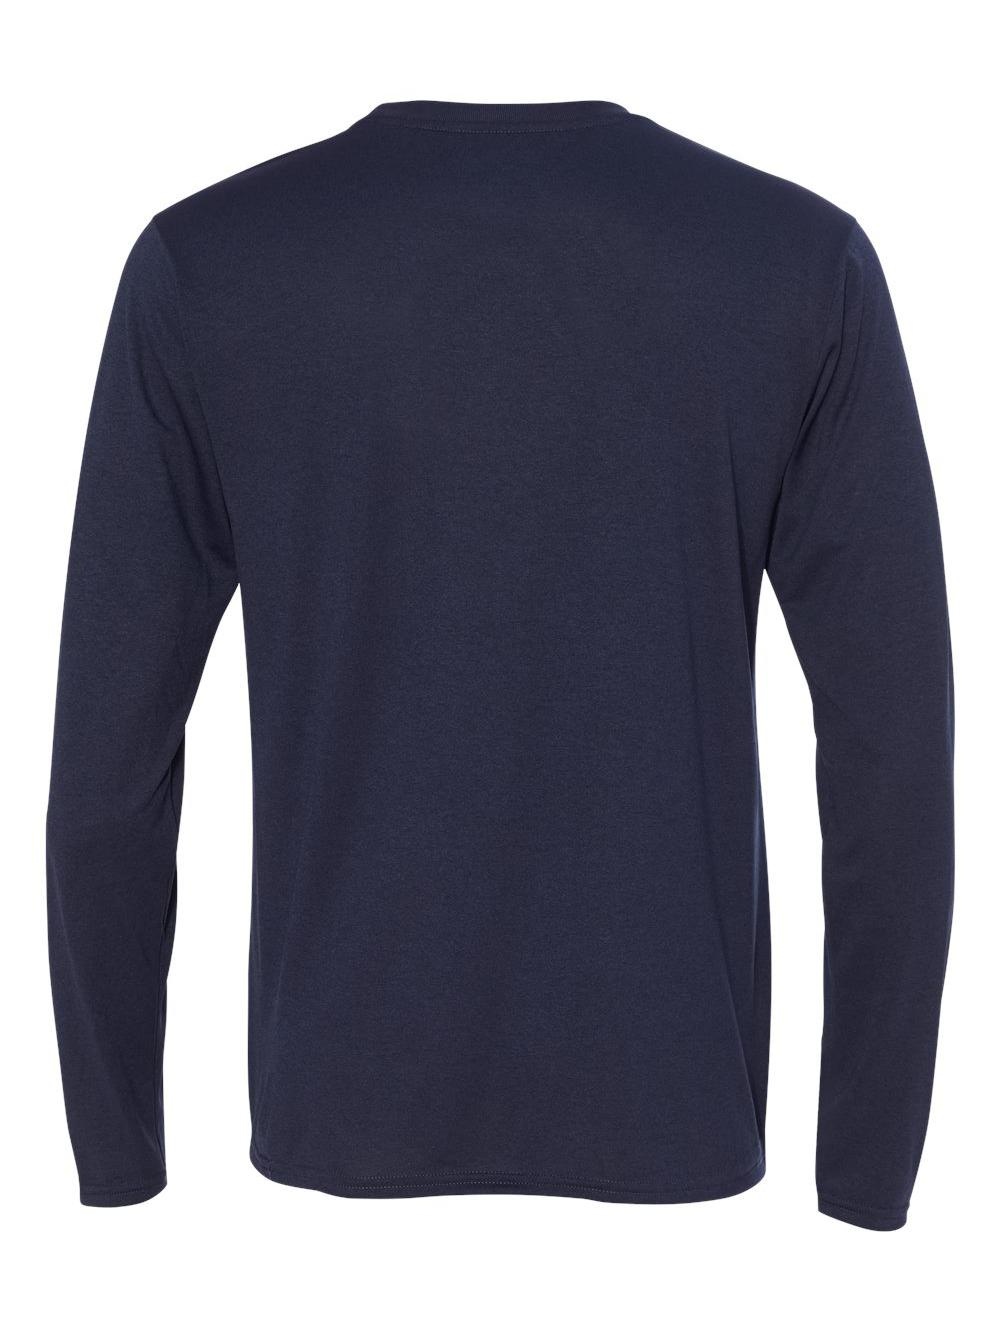 Gildan-Tech-Performance-Long-Sleeve-T-Shirt-47400 thumbnail 13